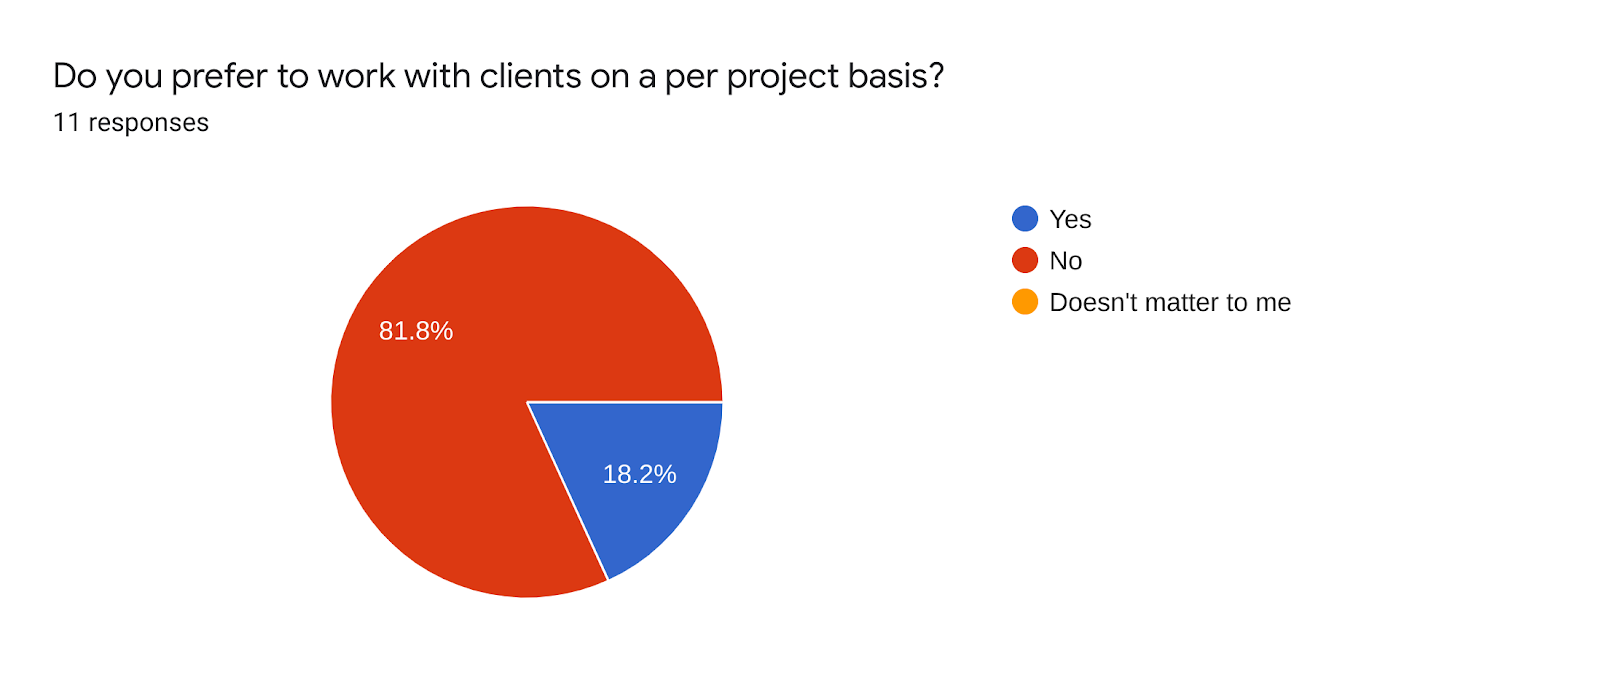 Forms response chart. Question title: Do you prefer to work with clients on a per project basis?. Number of responses: 11 responses.